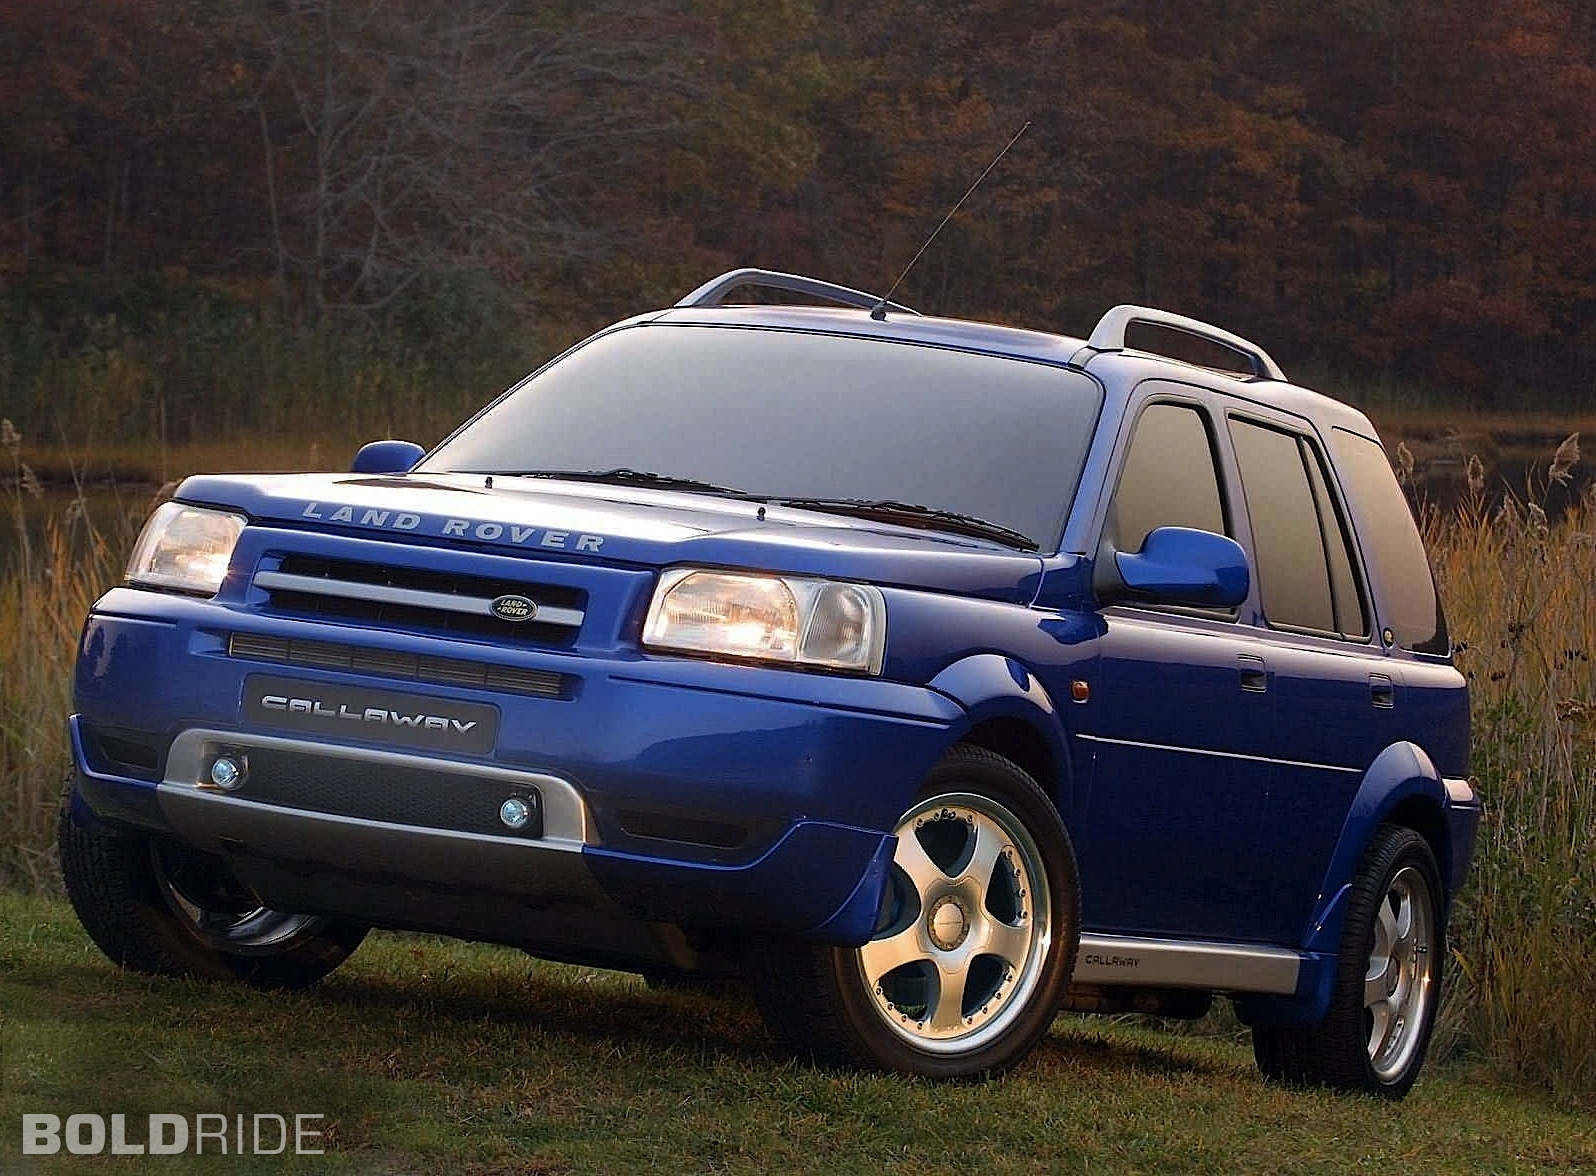 2019 Land Rover Freelander Callaway photo - 2